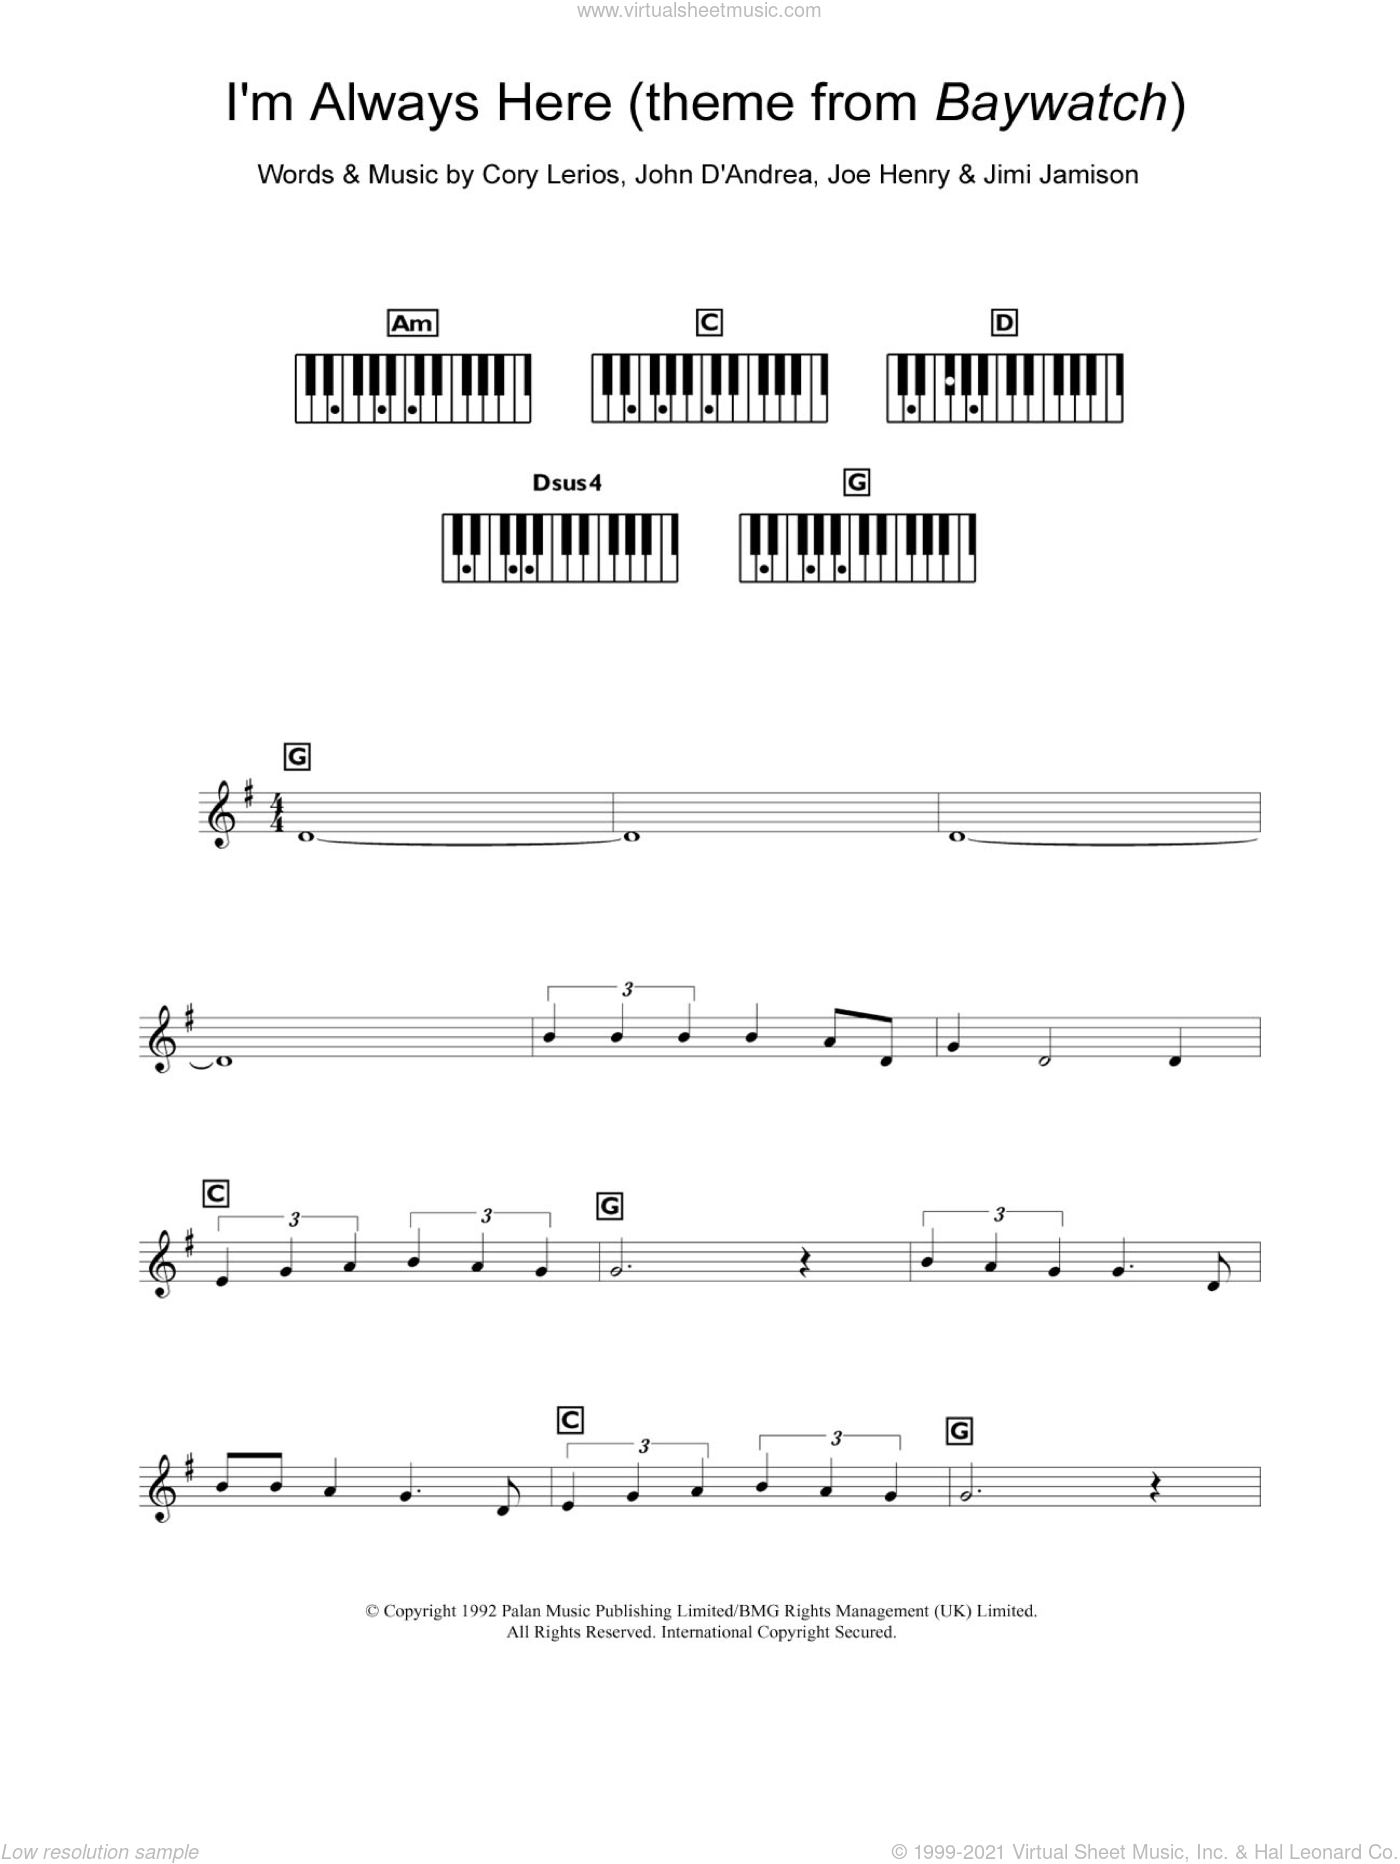 I'm Always Here (theme from Baywatch) sheet music for piano solo (chords, lyrics, melody) by John D'Andrea and Joe Henry. Score Image Preview.